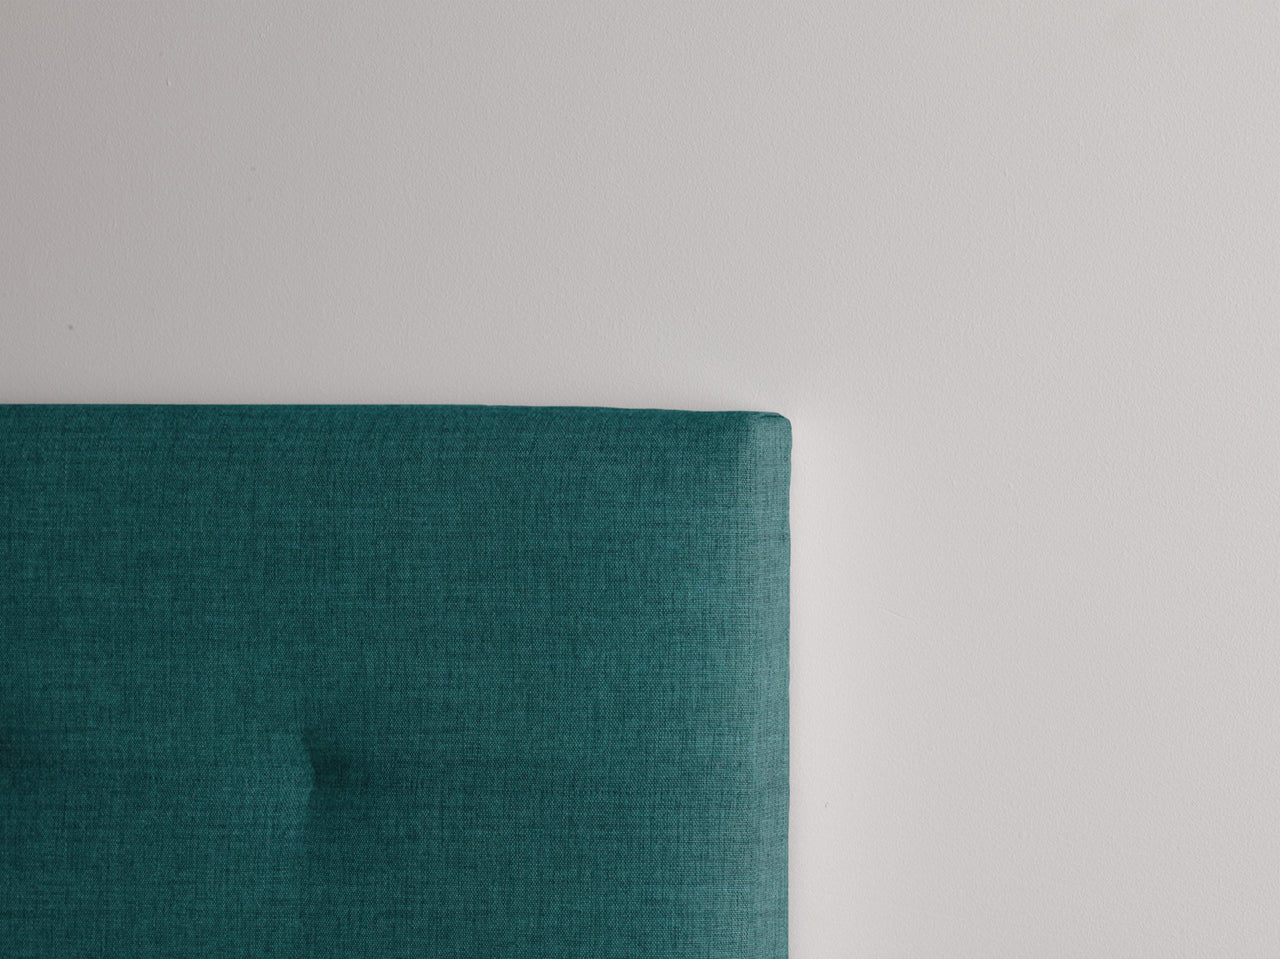 Optima Teal fabric sample